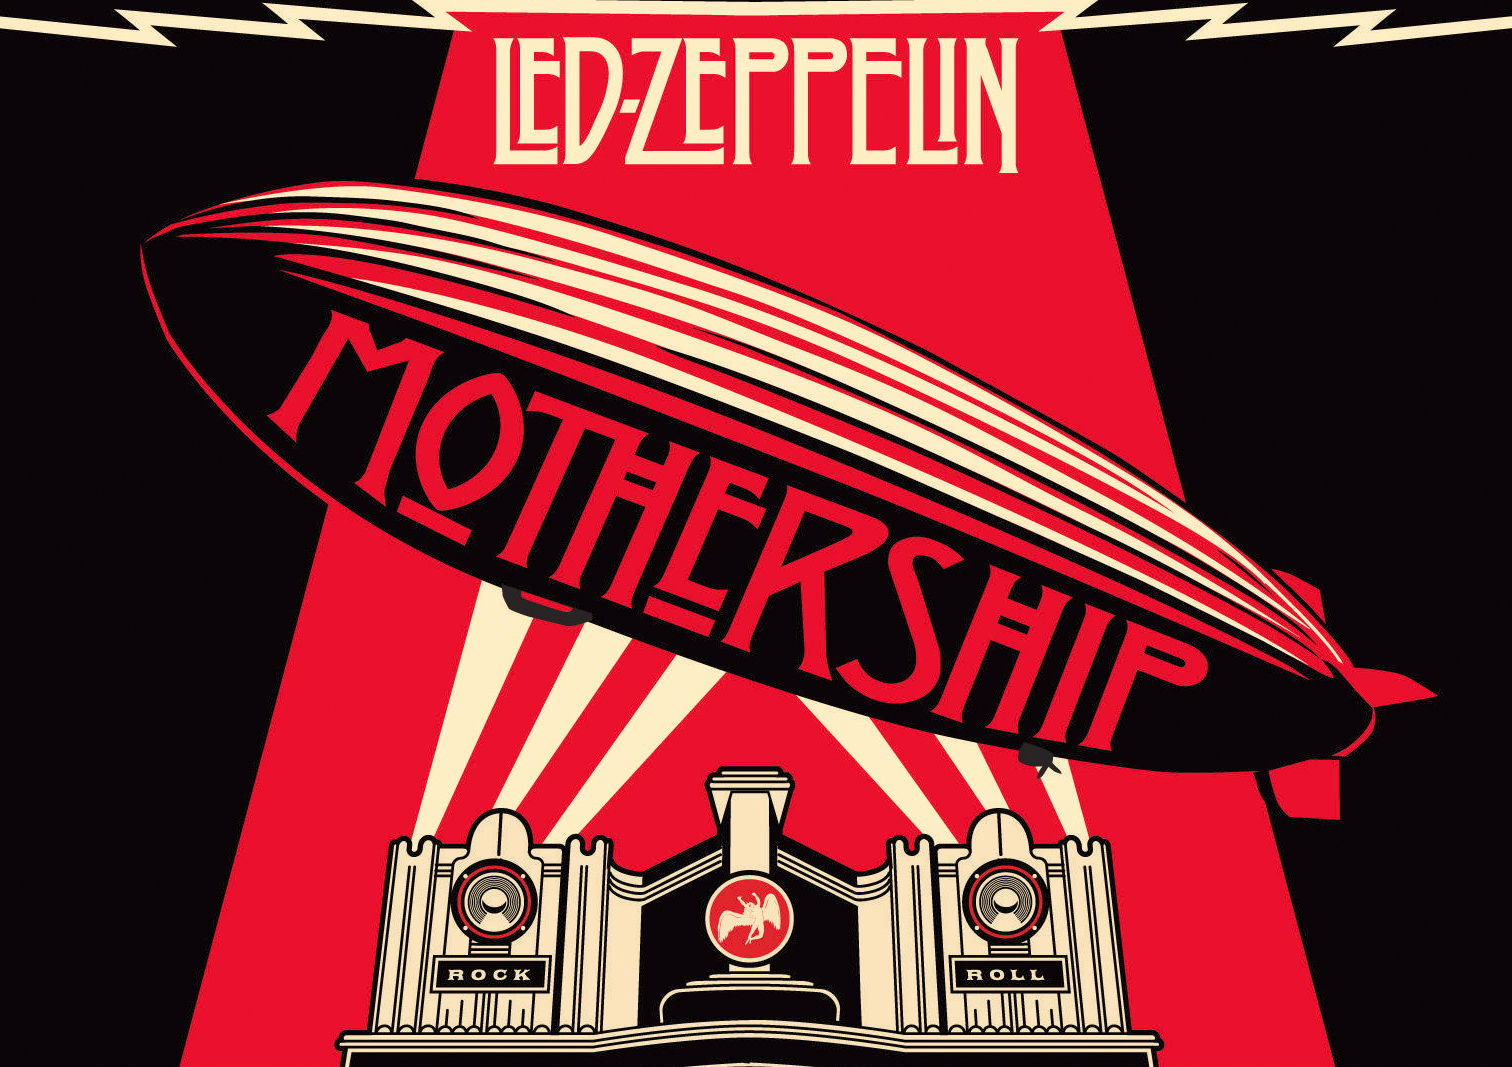 Led Zeppelin Wallpaper And Background Image 1512x1067 Id 292552